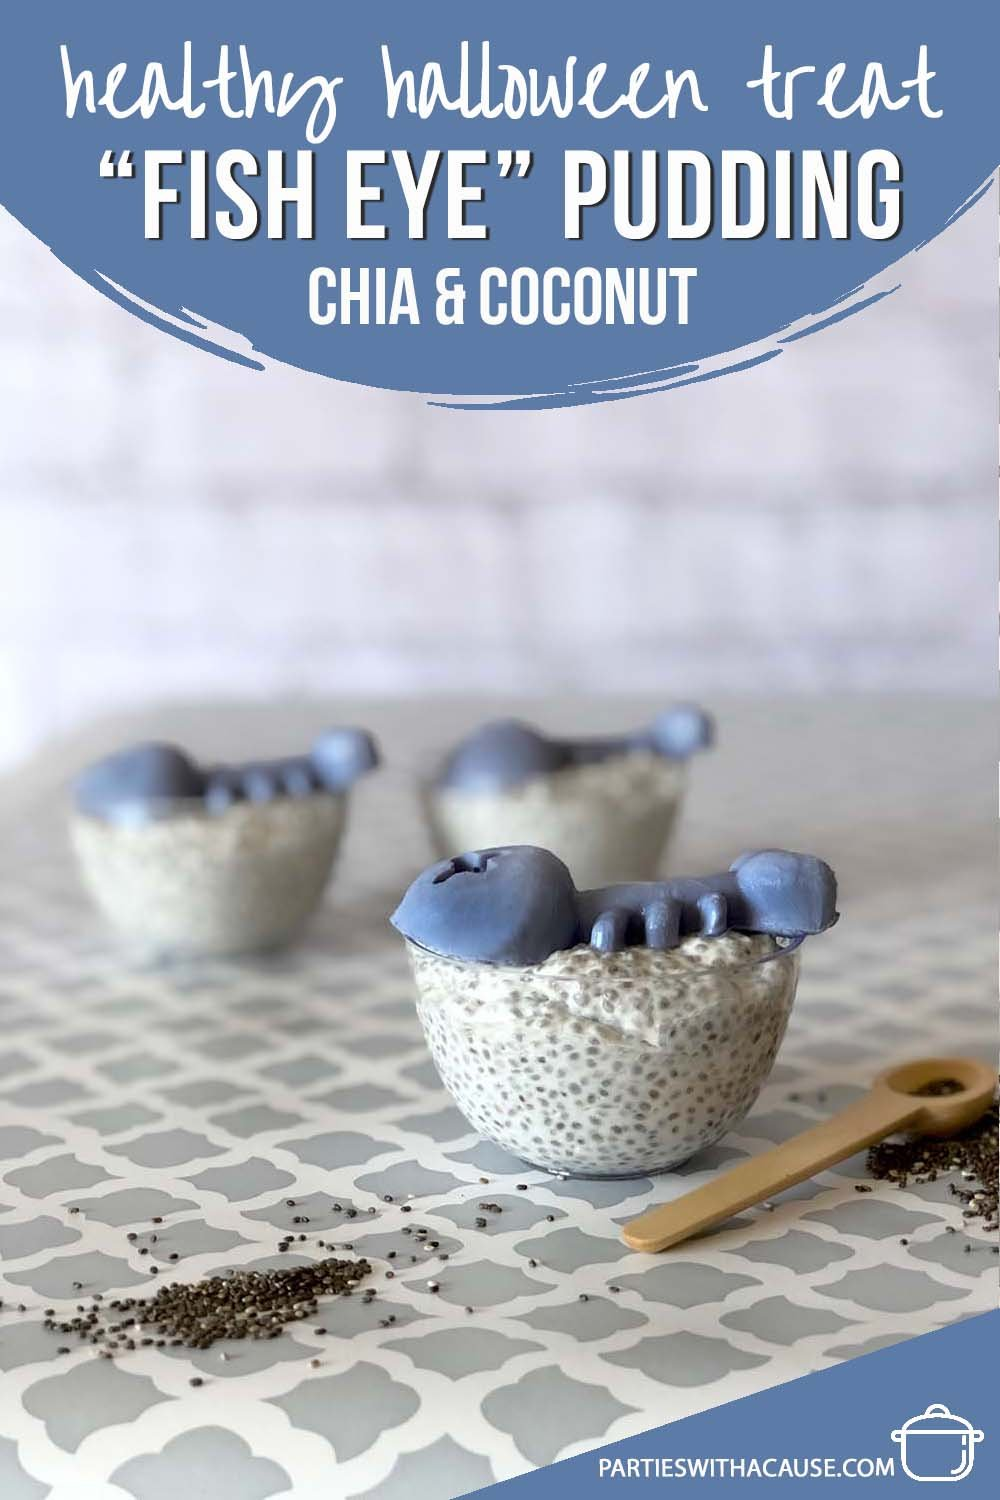 pudding cups with the text healthy Halloween treat fish eye pudding chia and coconut